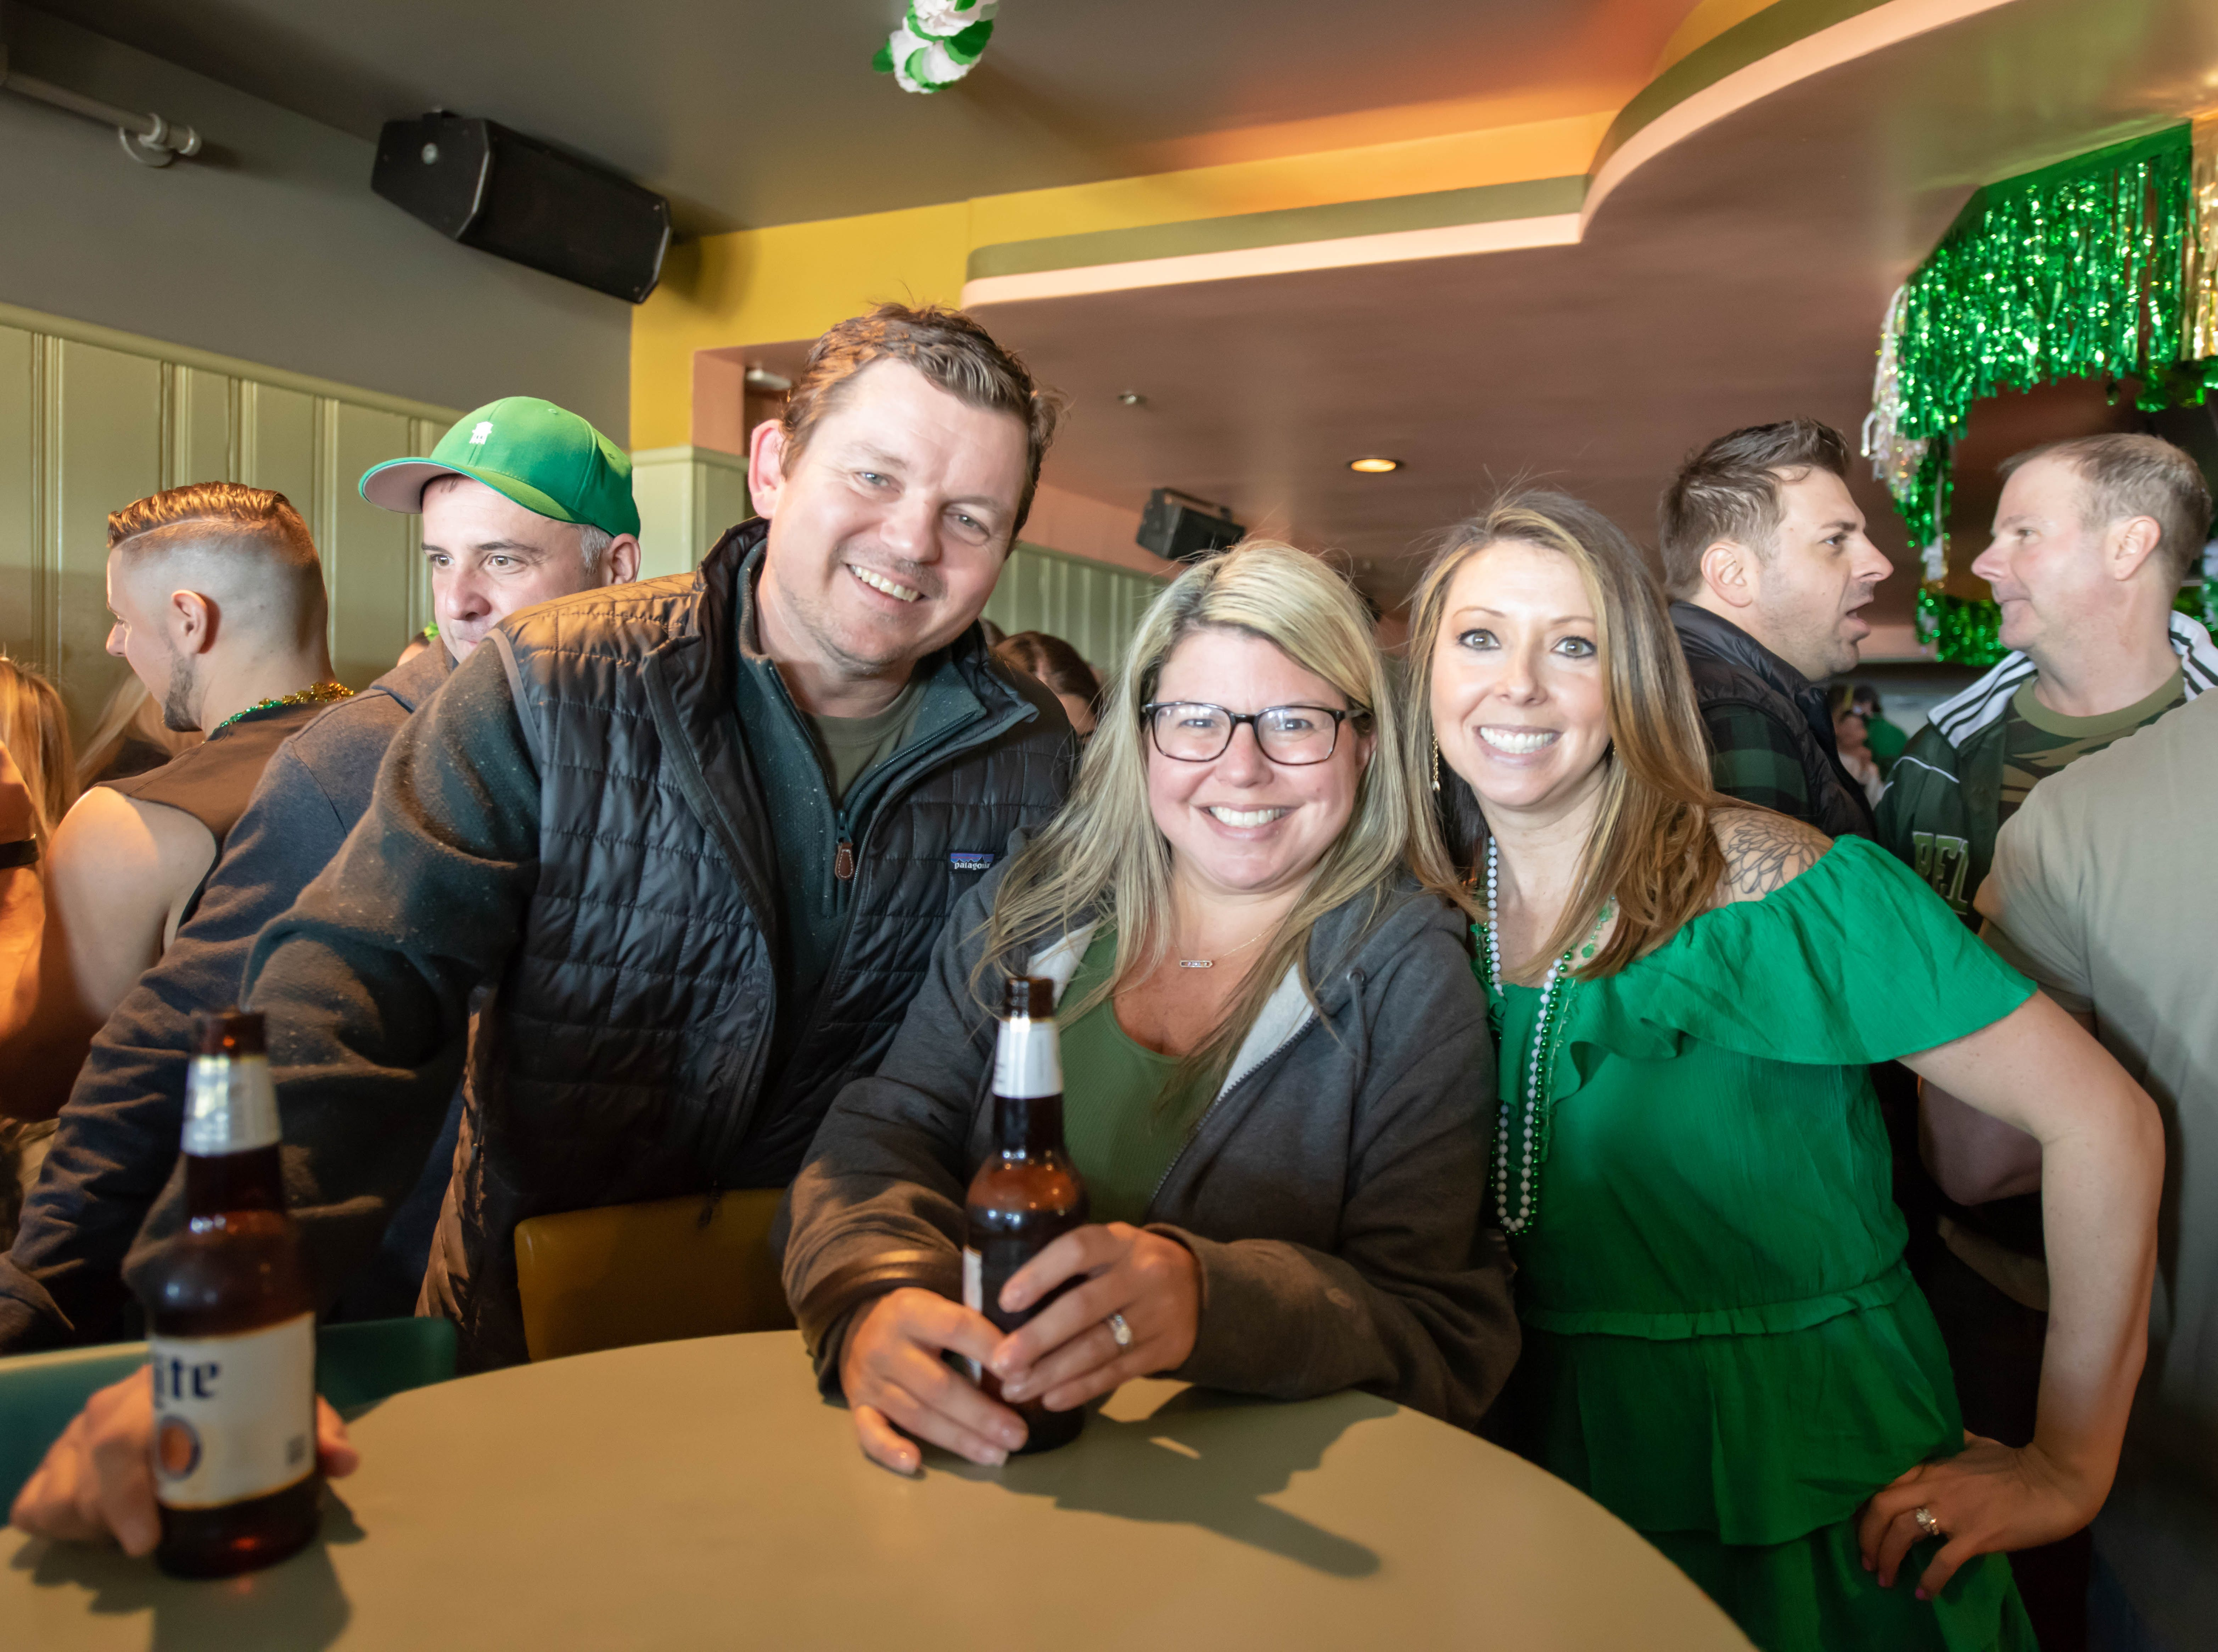 St. Patrick's Day party at D'Jais in Belmar  on March 17, 2019.